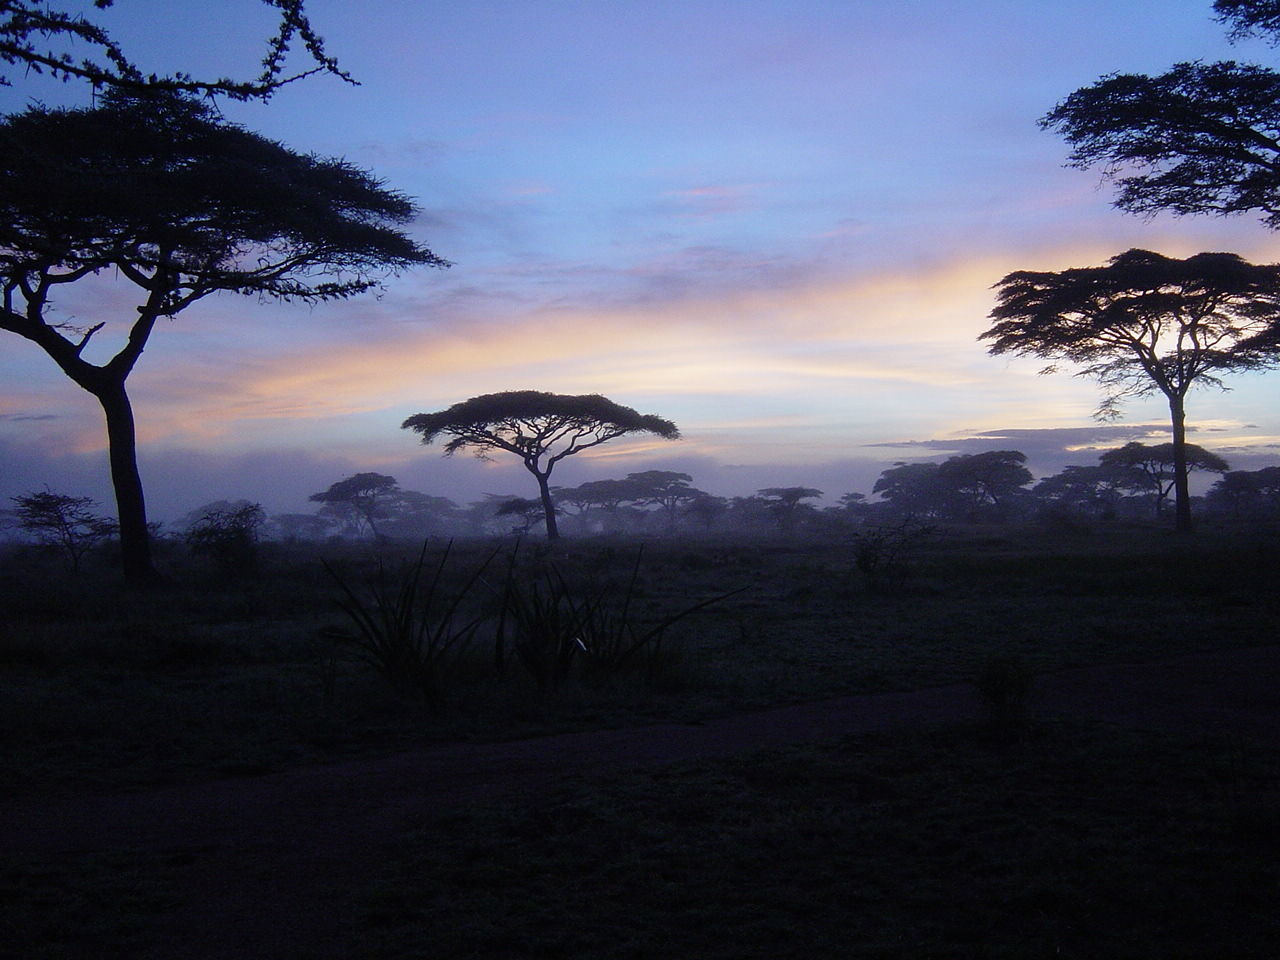 Beauty In Nature Cloud - Sky Day Dusk Growth Landscape Nature No People Outdoors Scenics Serengeti National Park Silhouette Sky Sunset Tanzania Tranquil Scene Tranquility Tree